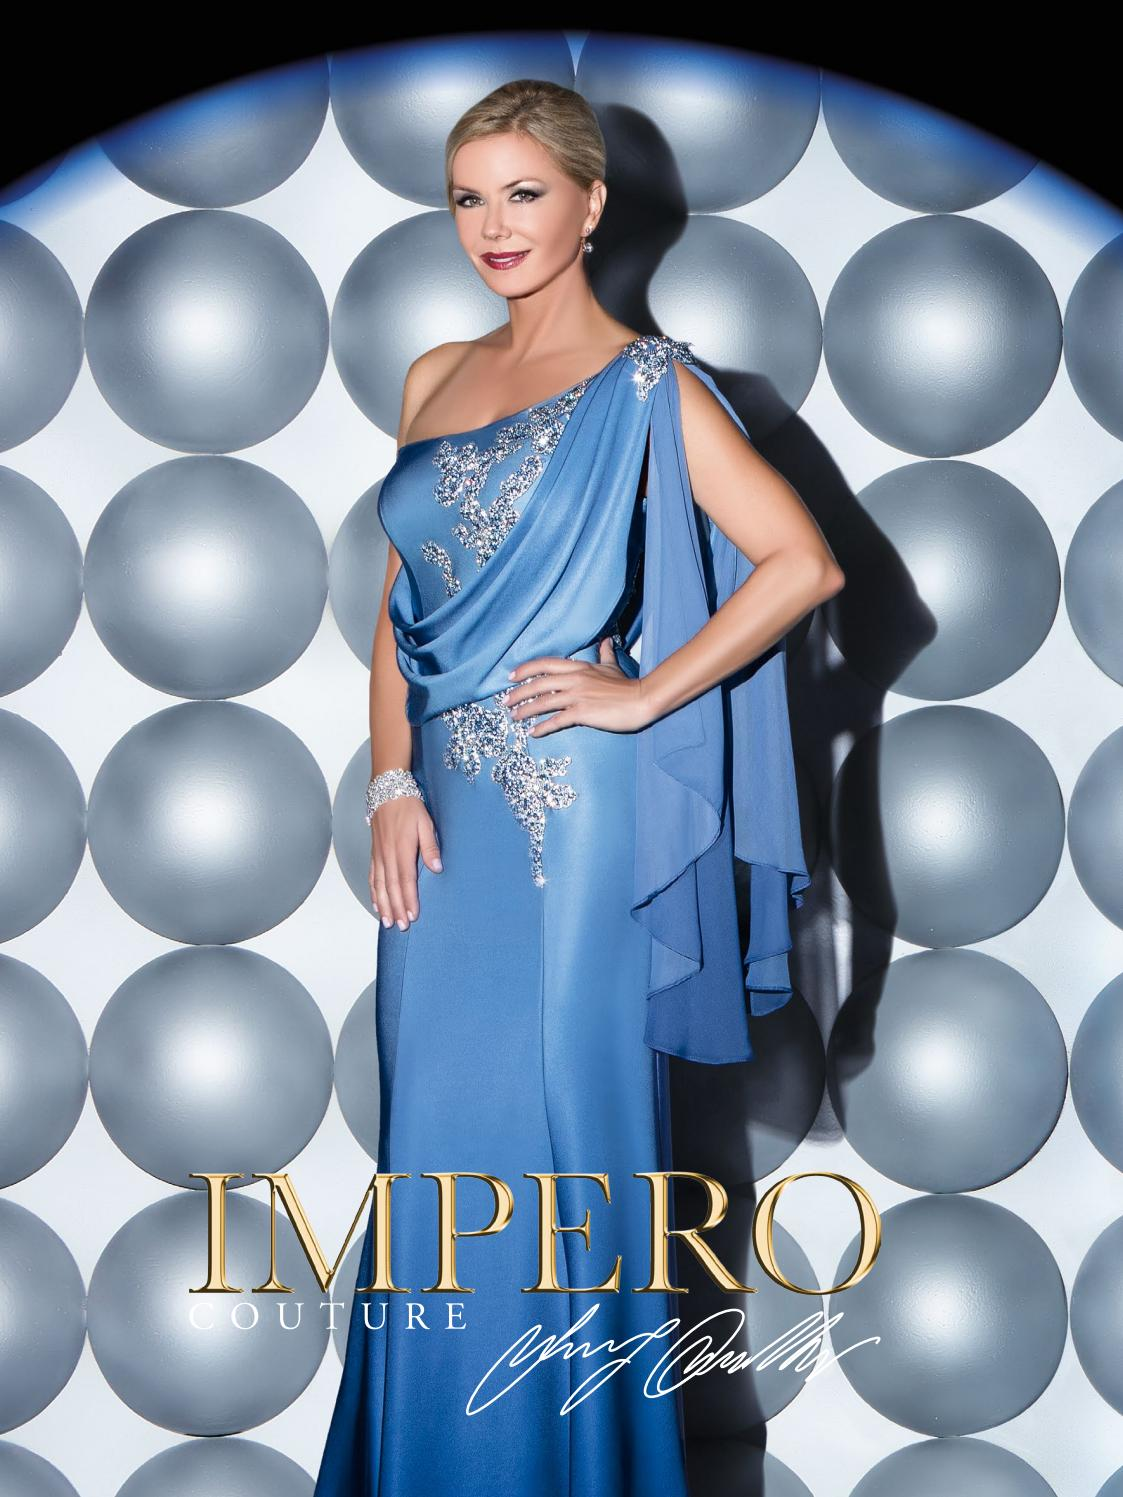 Catalogo Impero Couture 2018 by imperocouture - issuu 3df1a1157b2